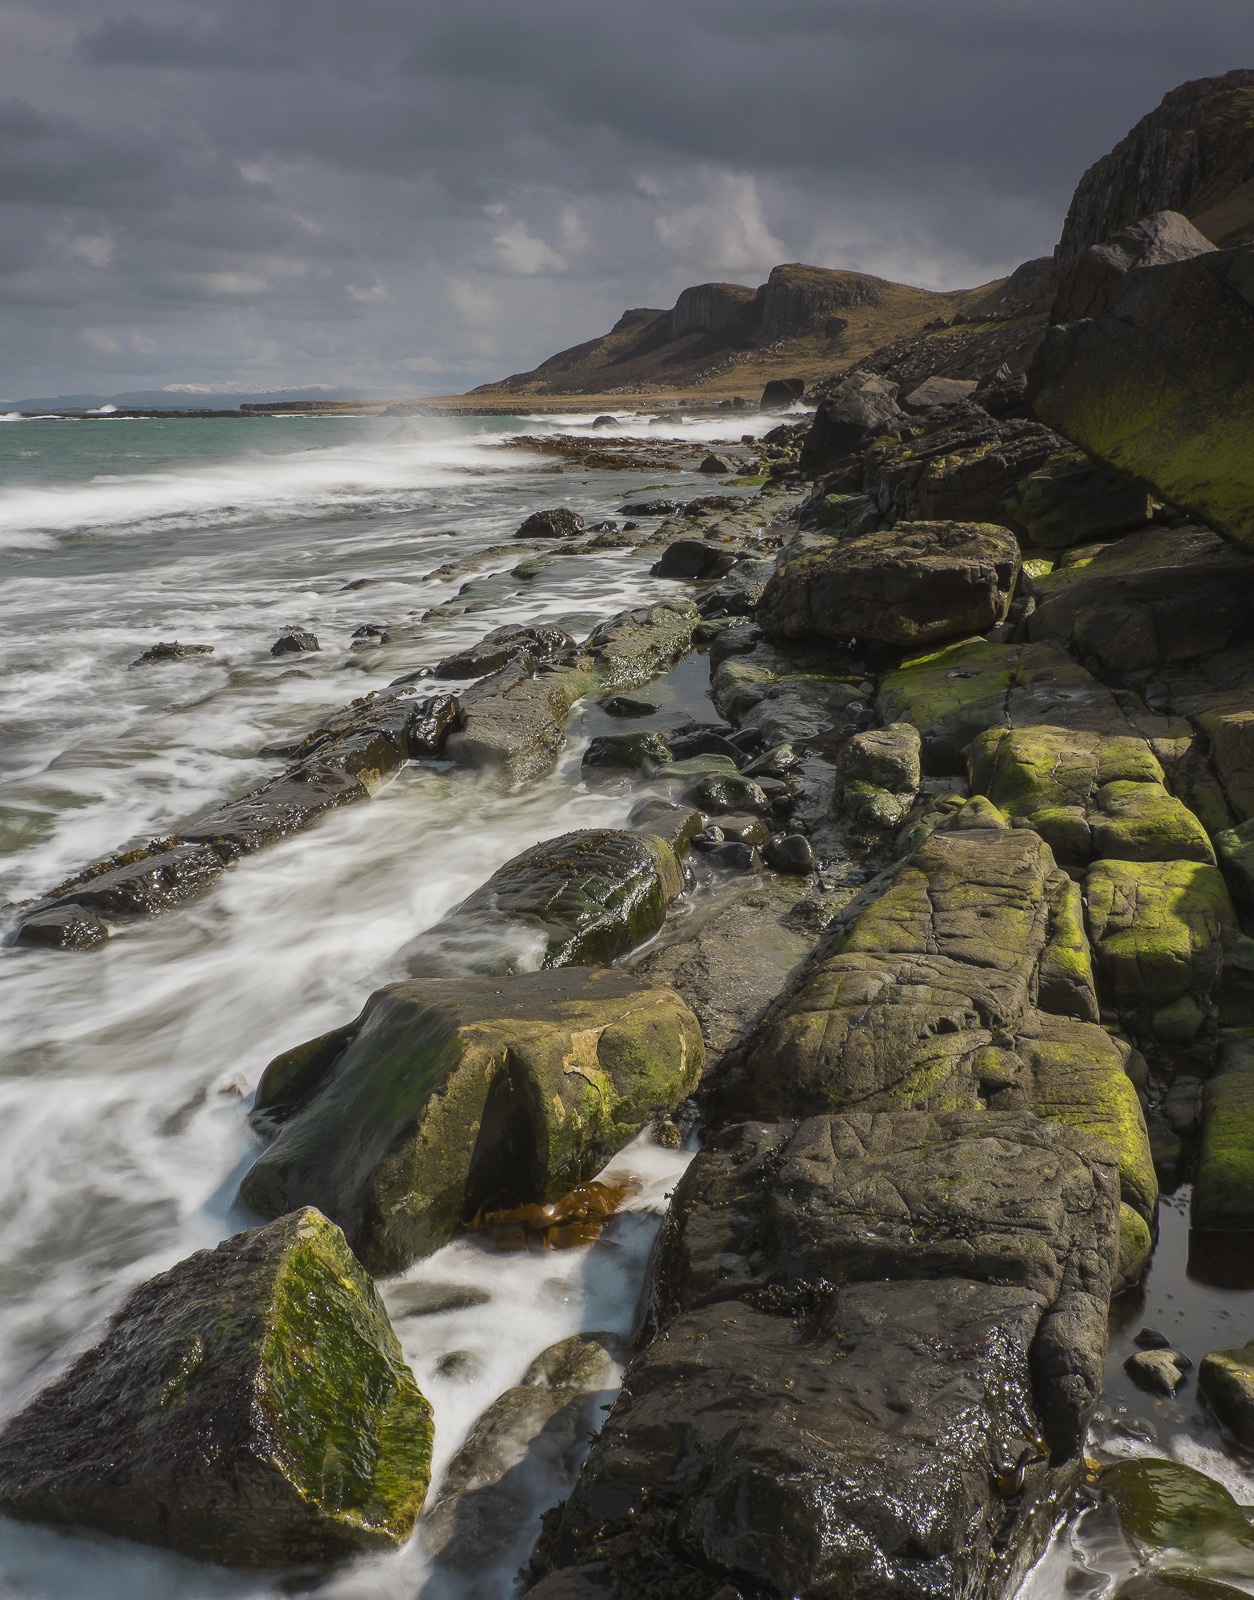 Staffin Bay is quite a strange place. The coast is rocky and rough the cliffs fluted like the pleats on a gigantic kilt...